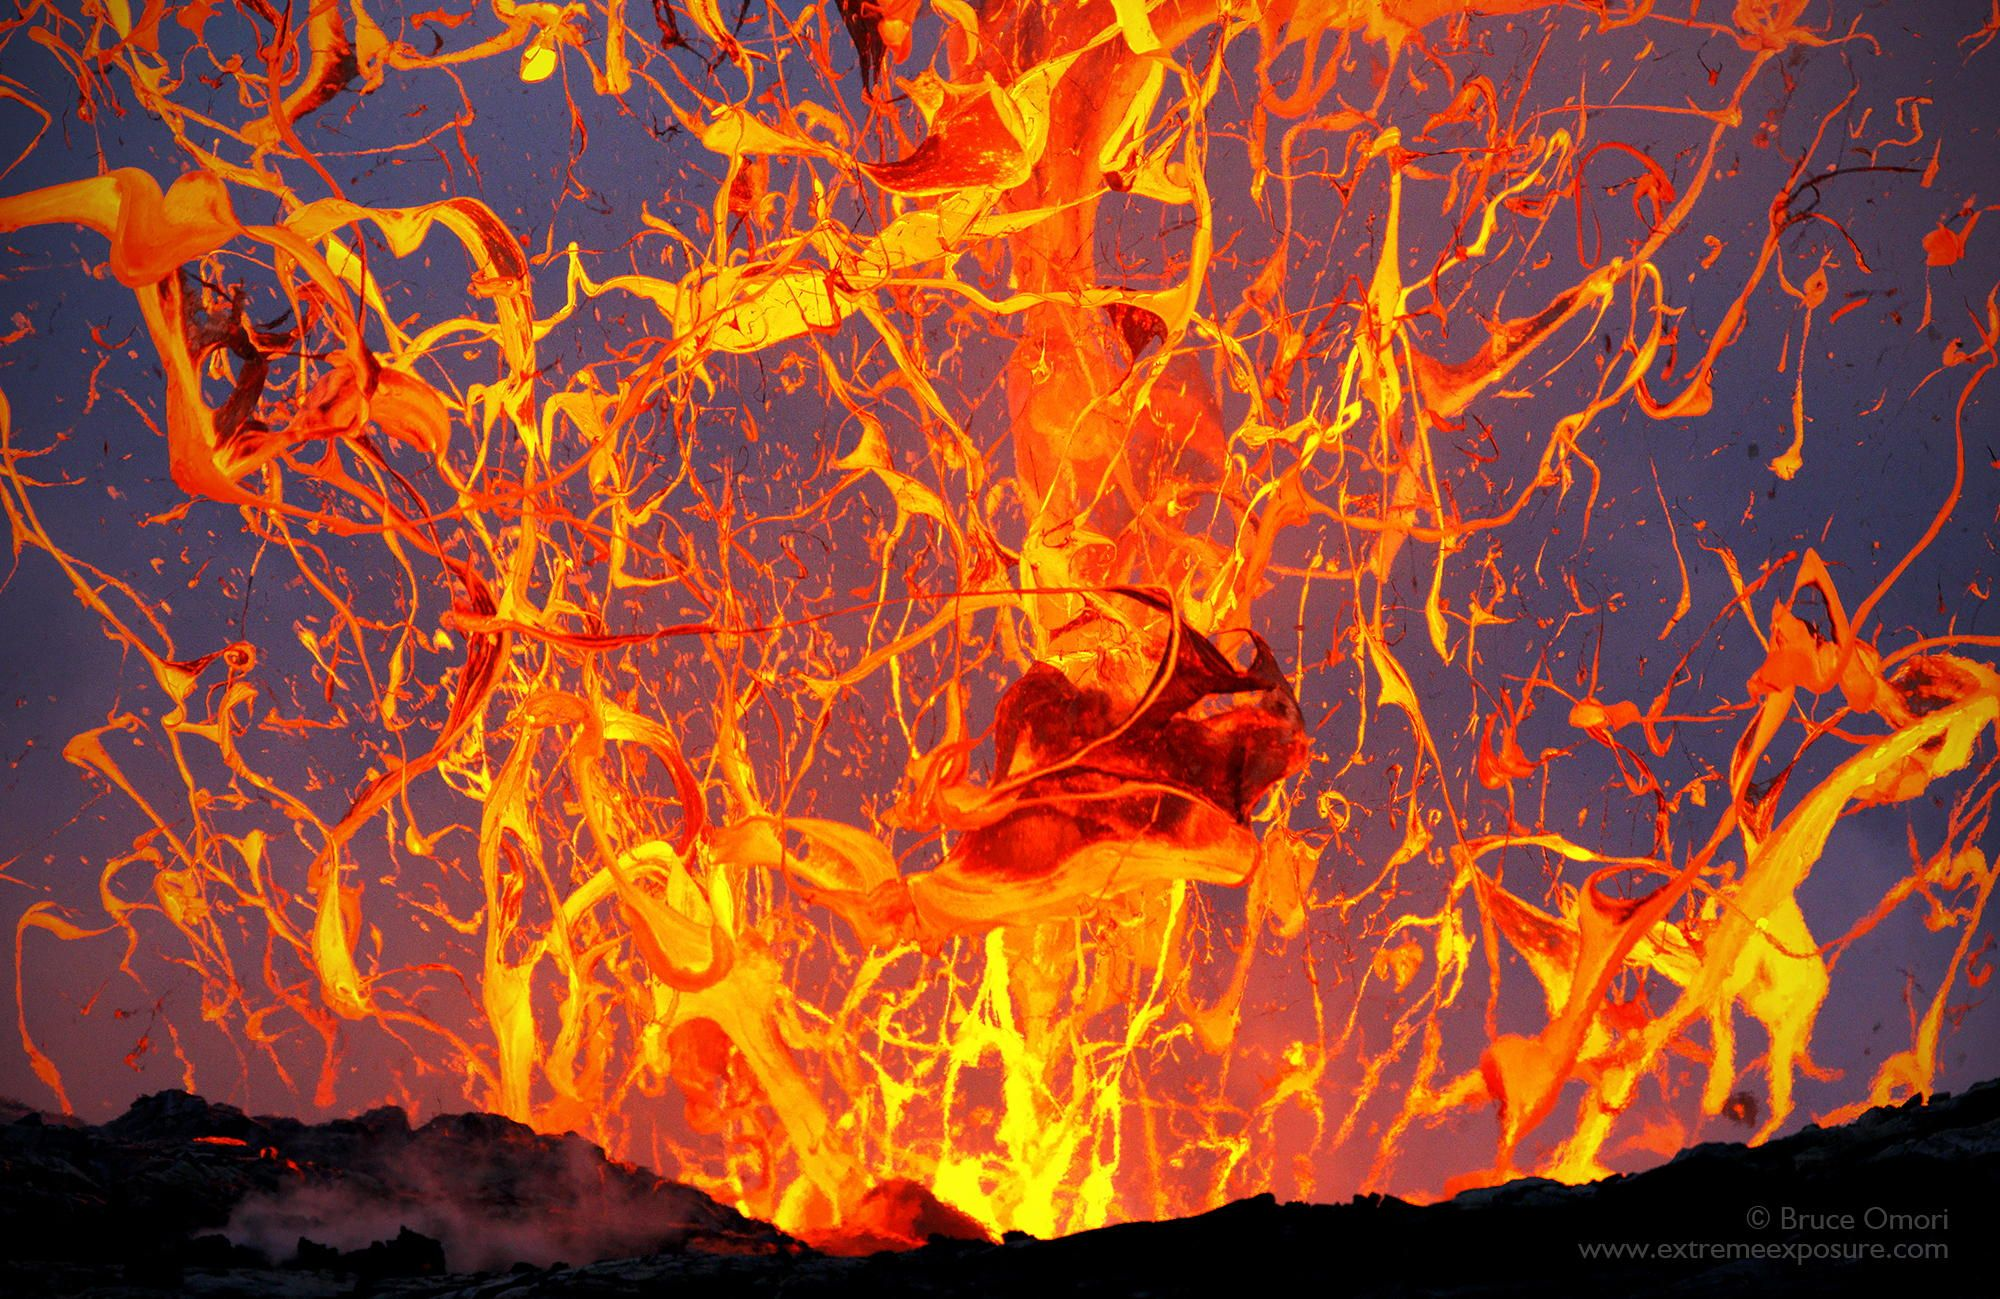 Photograph Ribbons In The Sky By Bruce Omori On Px Volcanoes - Incredible neon blue lava flames erupt volcano